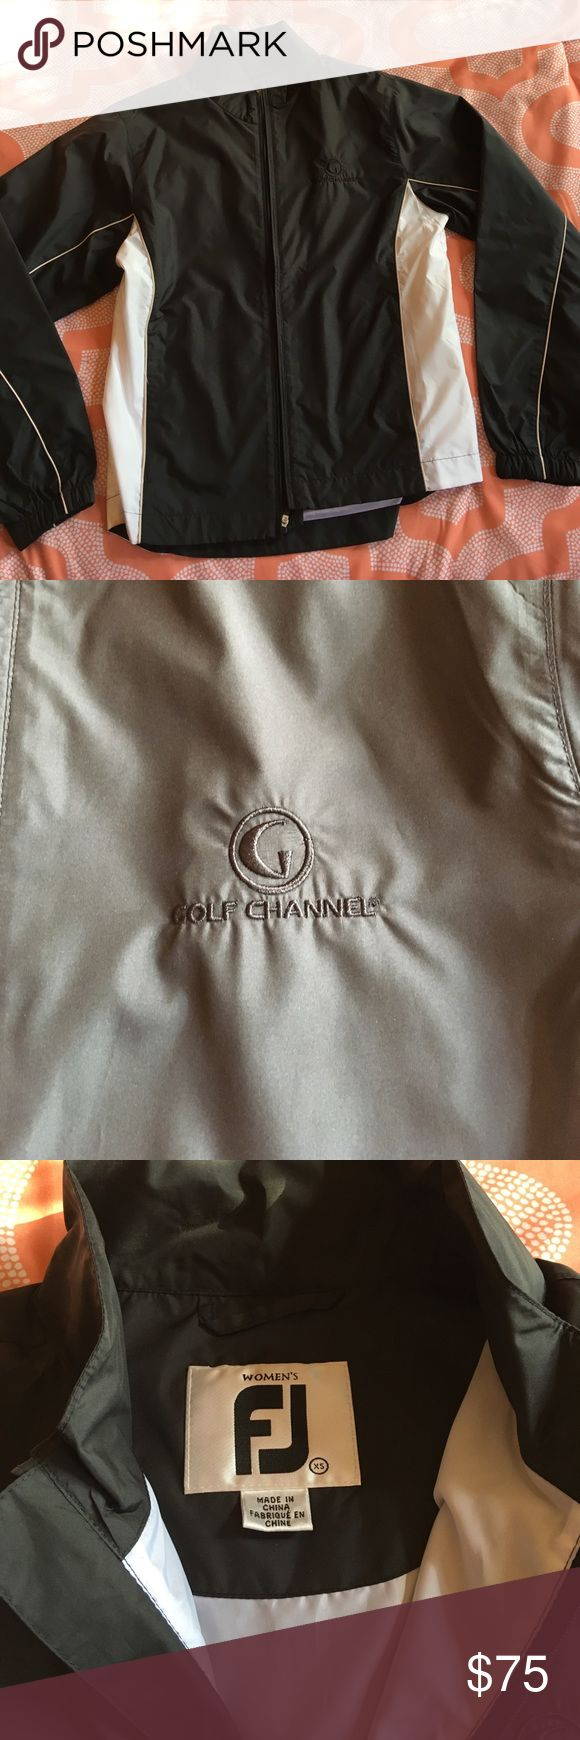 Brand new FootJoy Golf Jacket BRAND NEW/NEVER BEEN WORN FootJoy golf jacket in black and white. Golf Channel logo on front and FJ logo on back. Feels like the material from a windbreaker. Full zipper in front. FootJoy Jackets & Coats